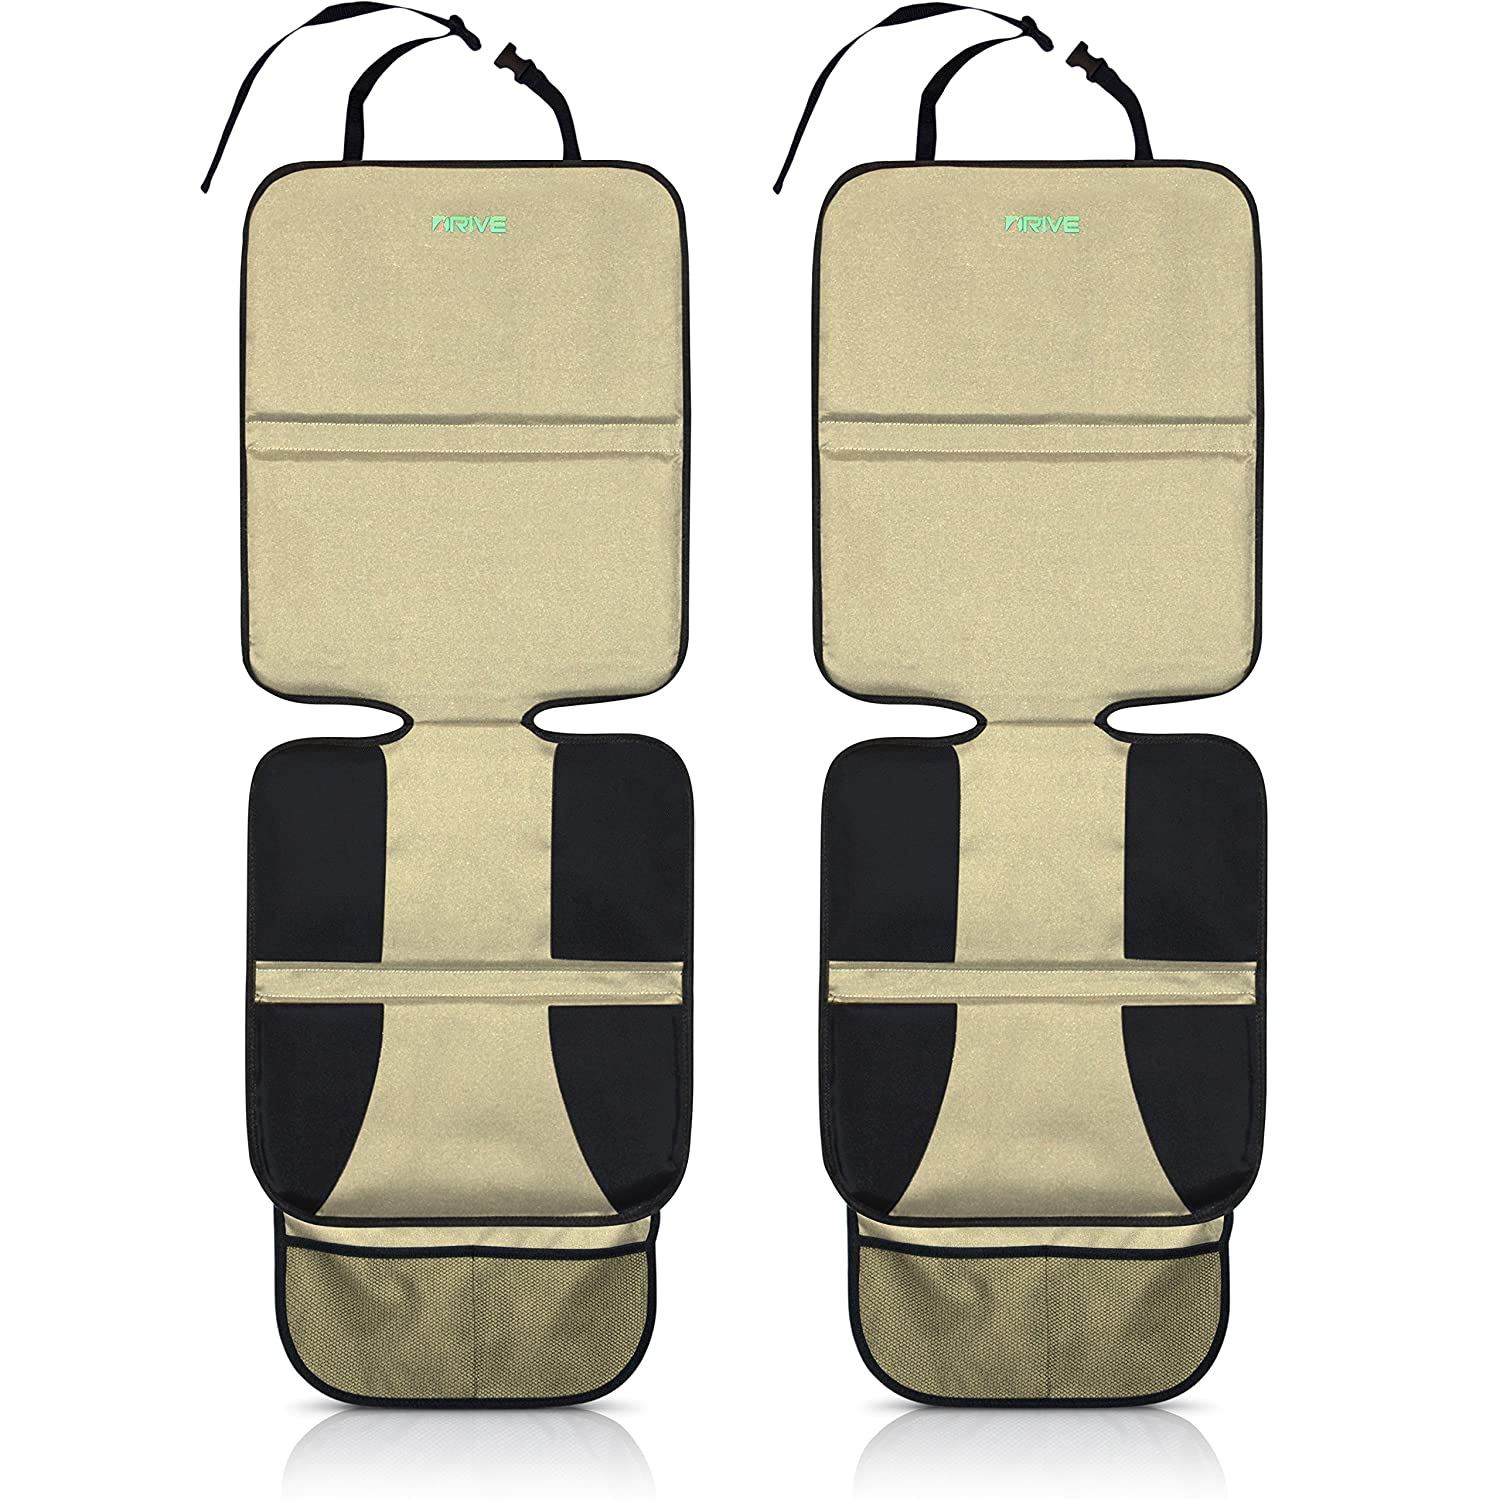 Car Seat Protector (2-Pack, Tan) by Drive Auto Products - Thick Protection for Child Cars Seats or Dog Mat - Durable Cover Protects Automotive Vehicle Leather or Cloth Upholstery from Damage Car Seat Protector 2P Beige